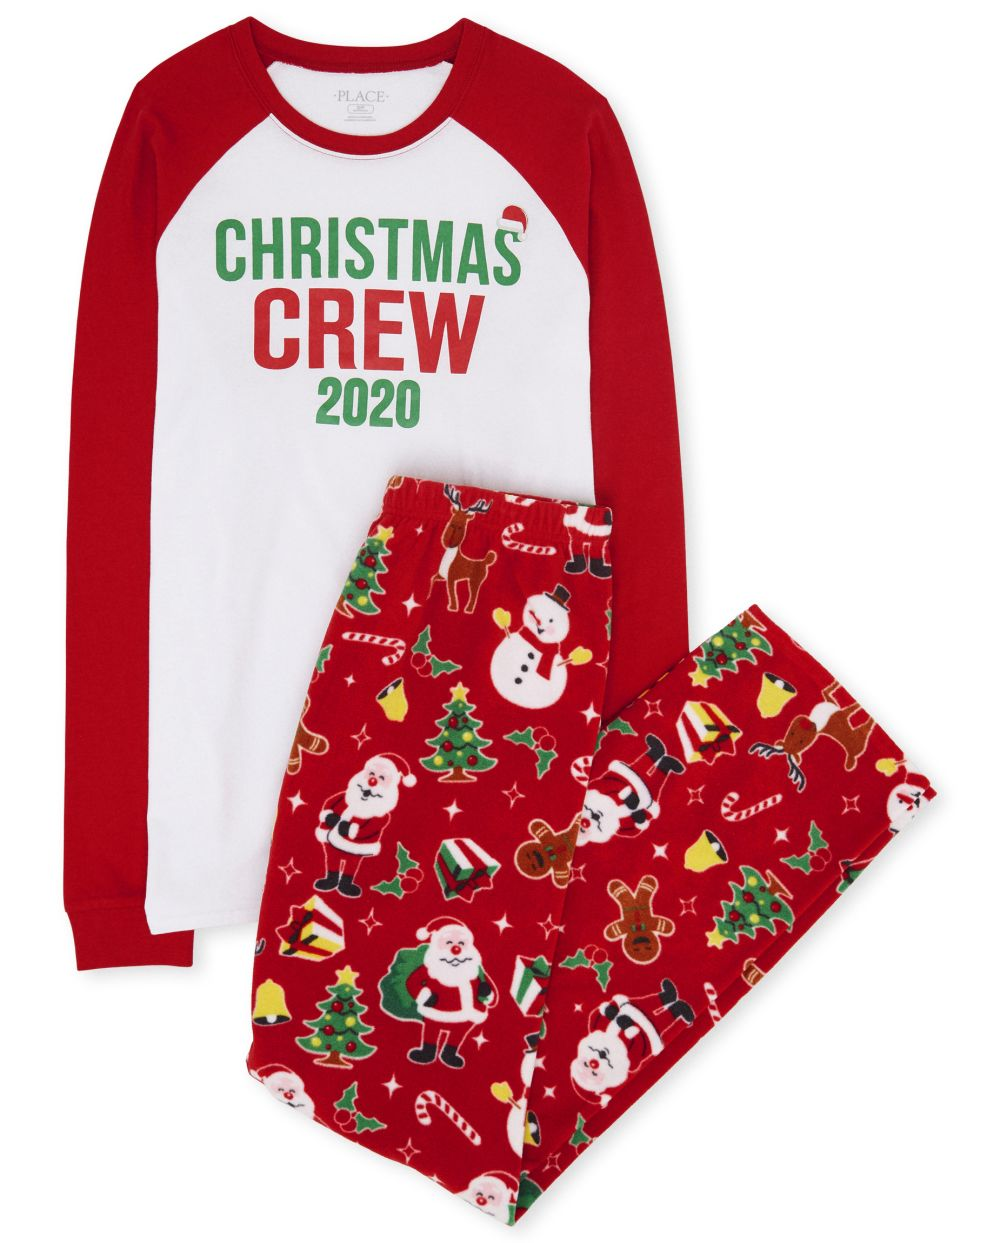 Unisex Adult Matching Family Christmas Crew Cotton And Fleece Pajamas - Red - The Children' Place